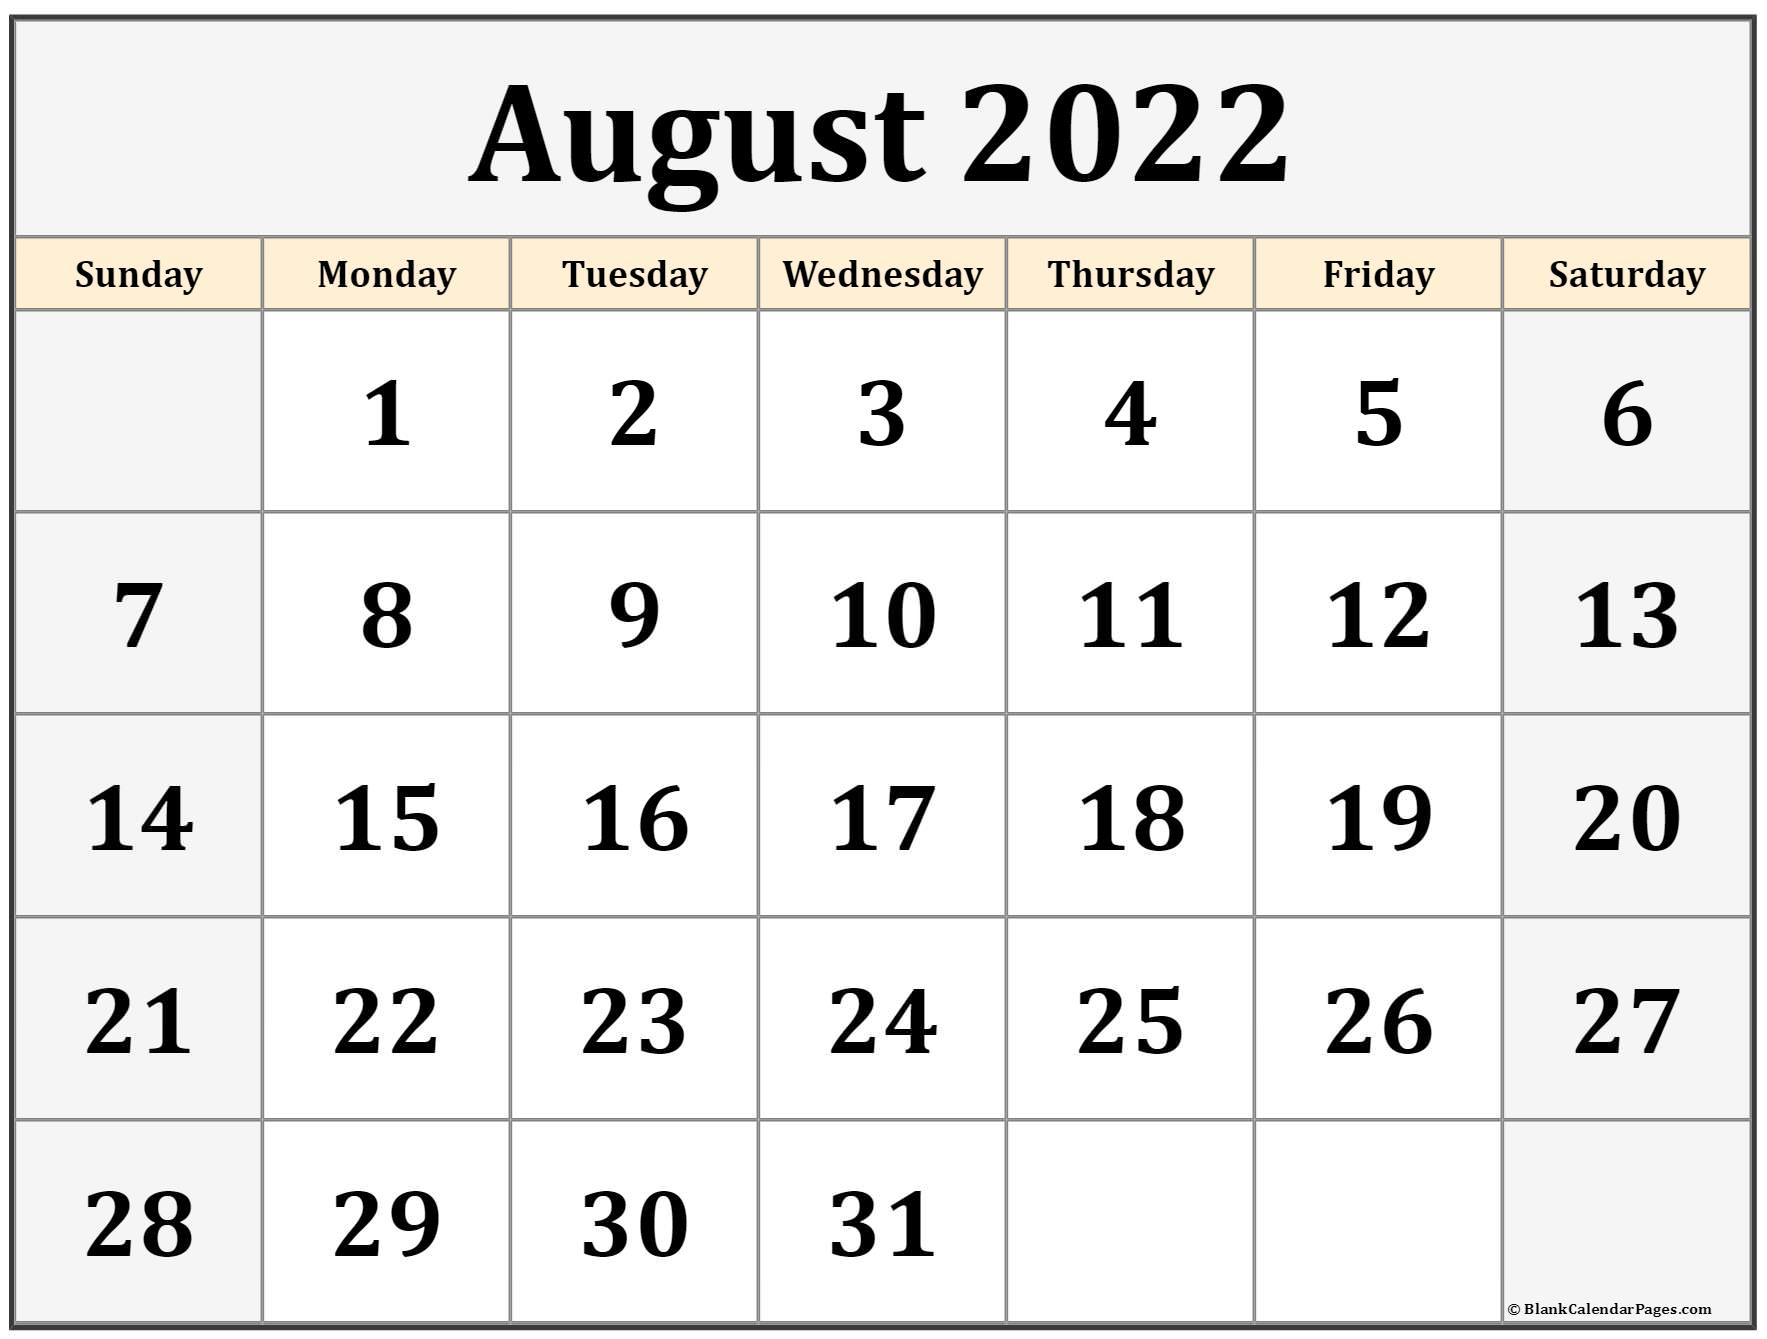 Time rules our lives, with appointments and deadlines guiding us through our days. August 2022 calendar | free printable calendar templates